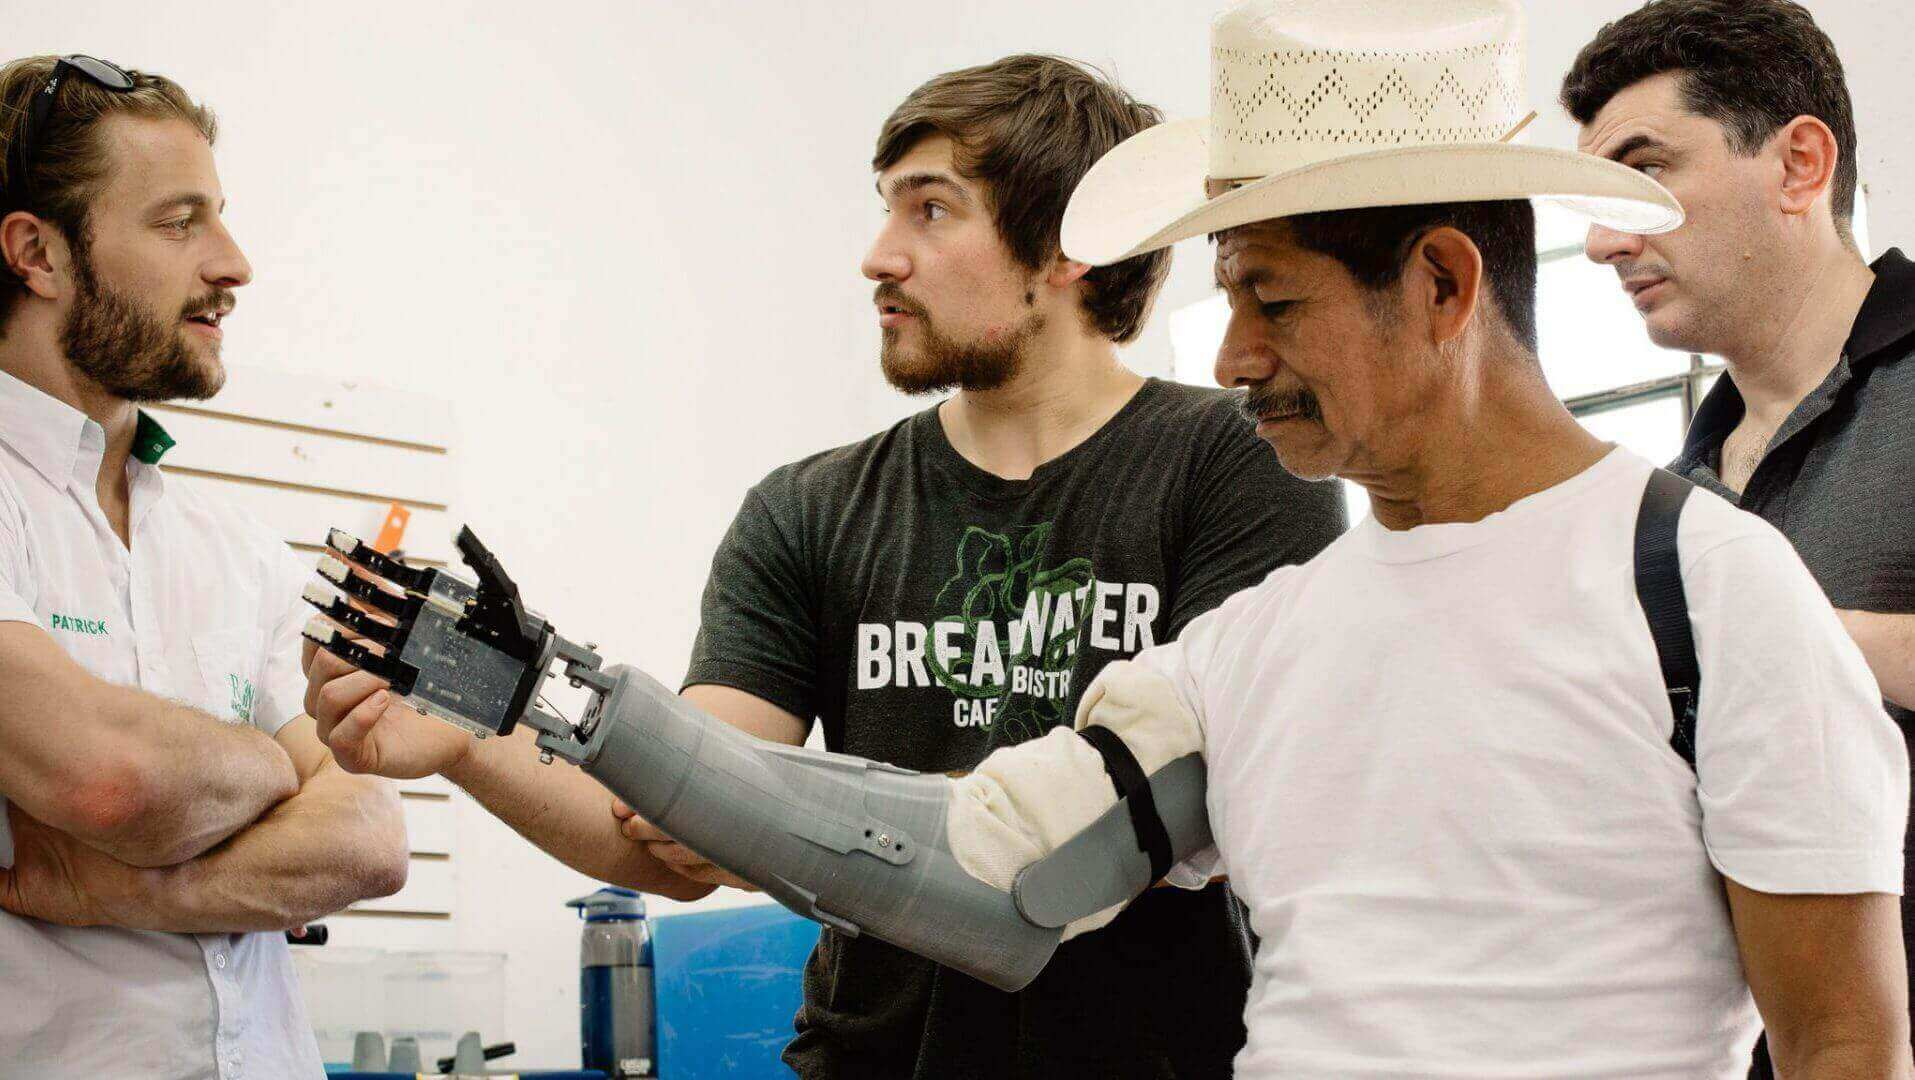 The Victoria Hand Project Uses 3D Printing to Create Ergonomic Prosthetics | All3DP